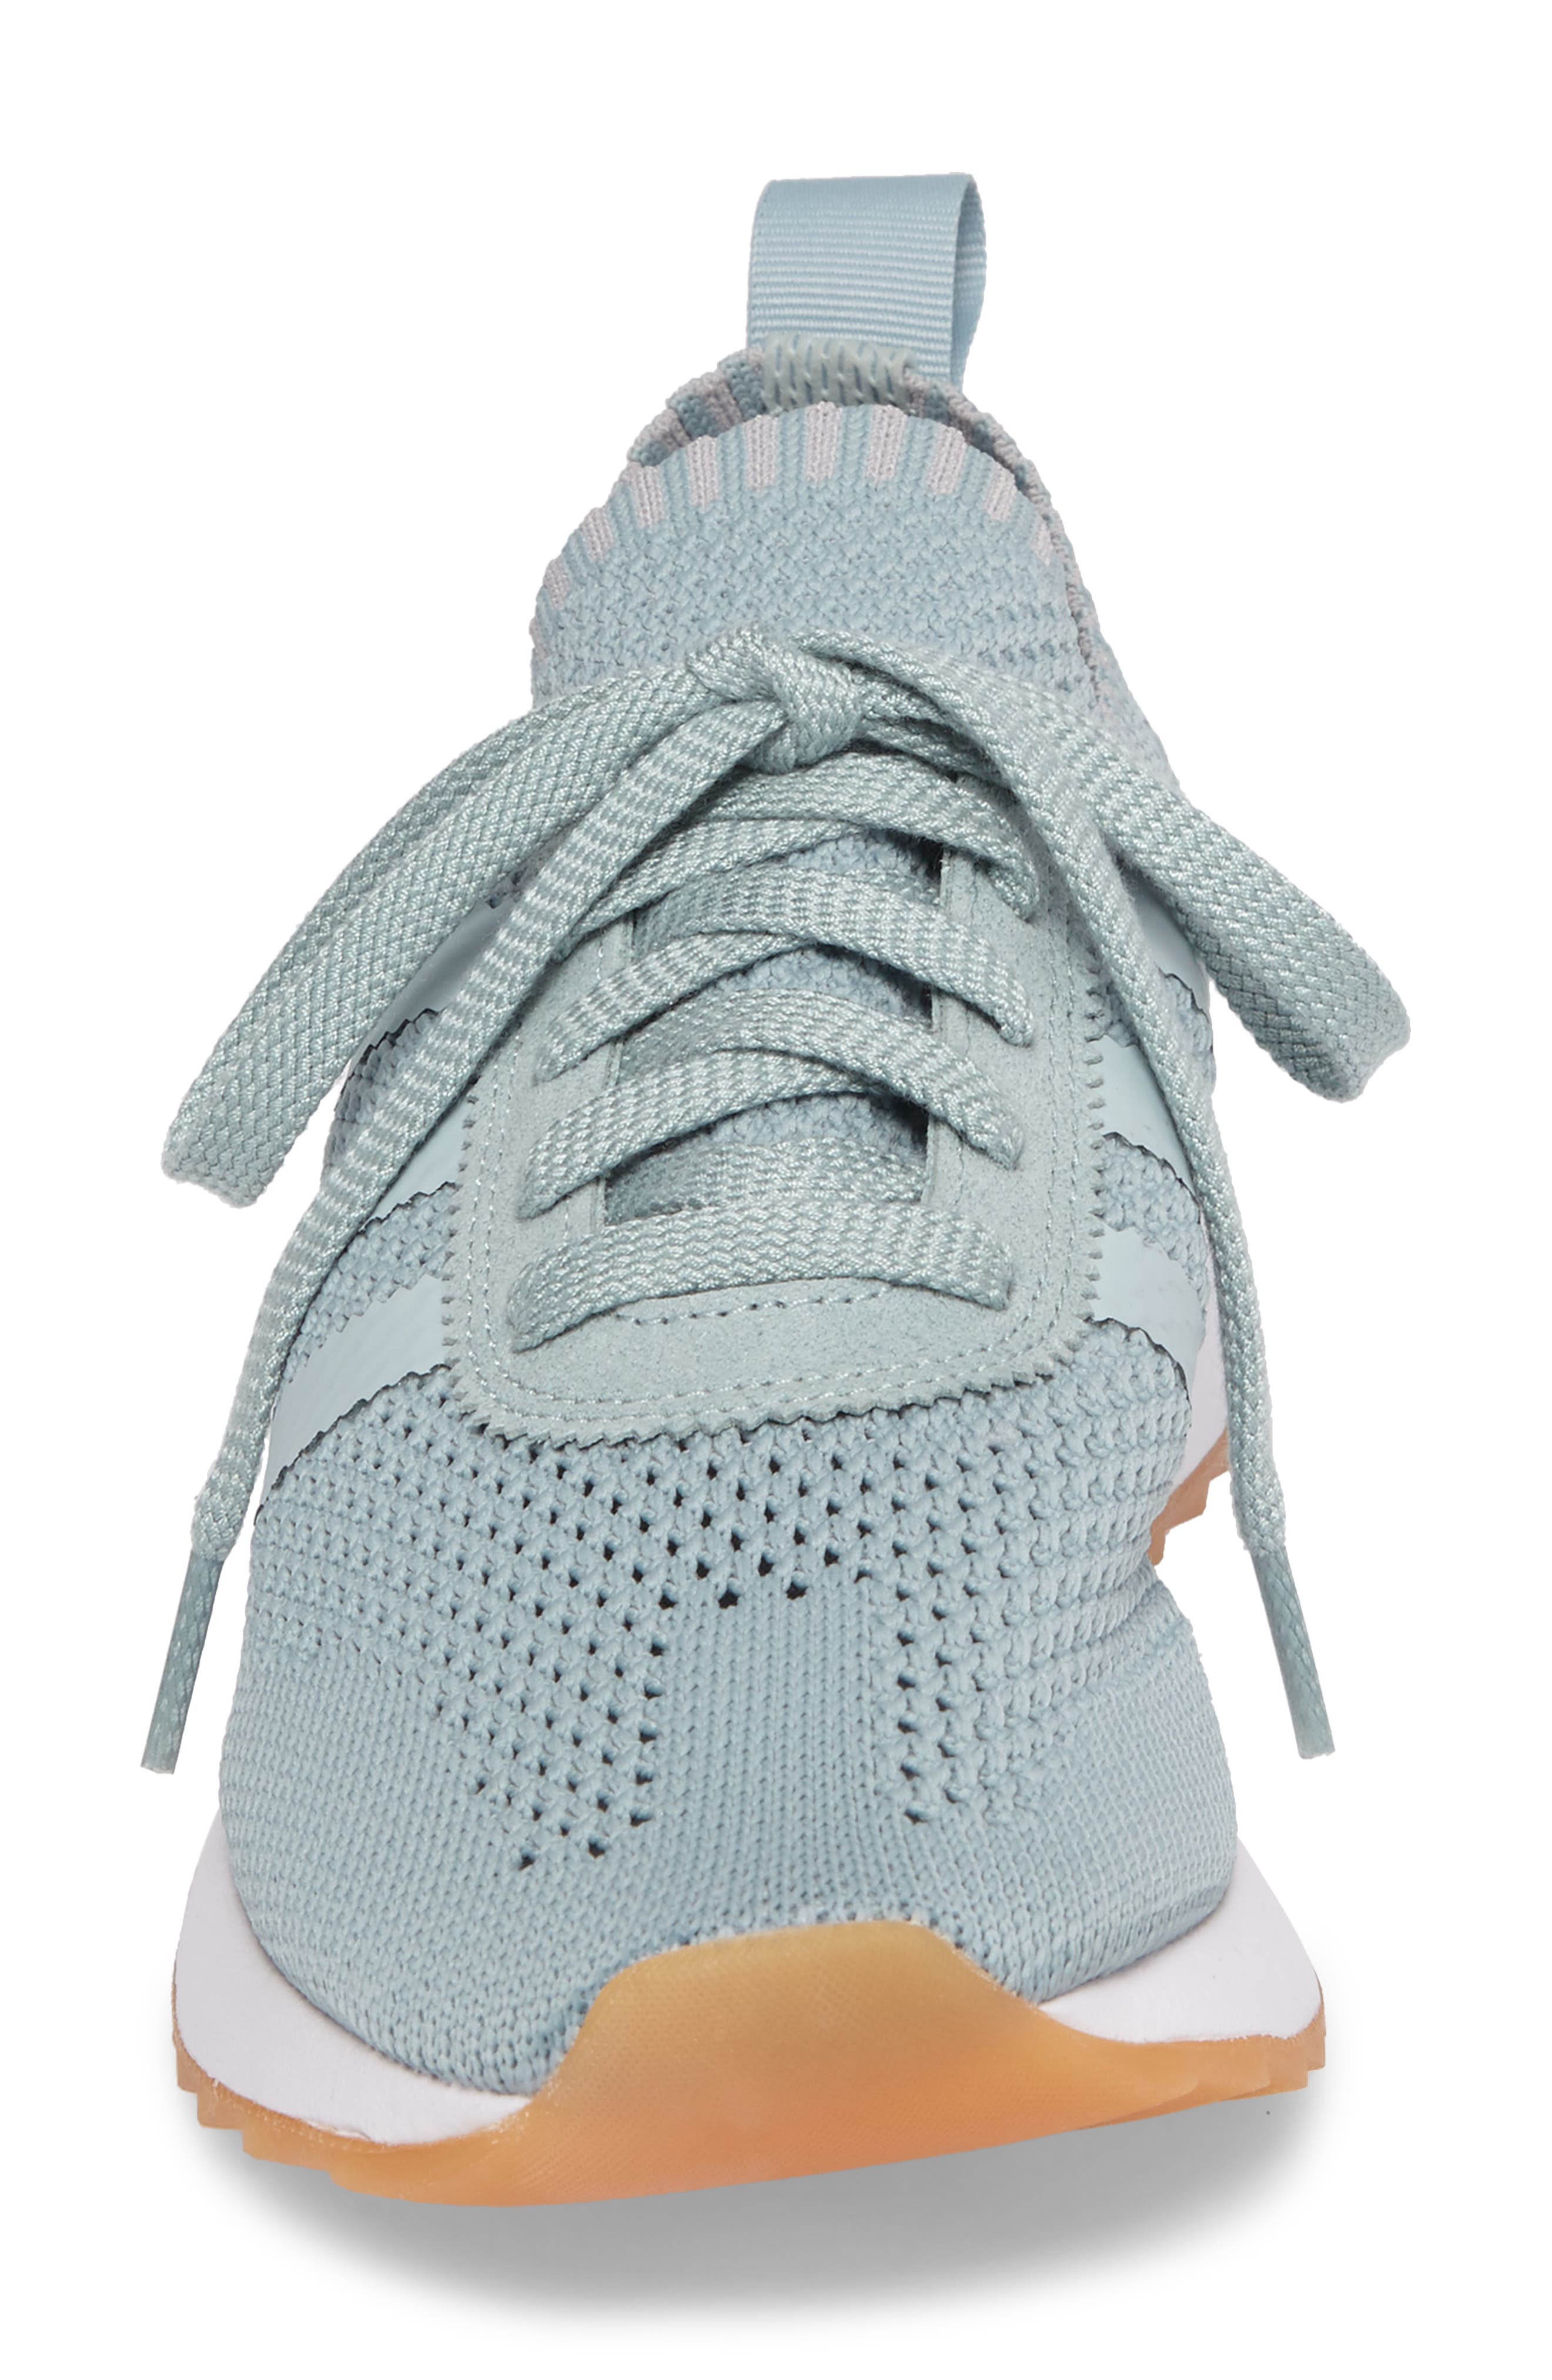 Flashback Primeknit Sneaker,                             Alternate thumbnail 4, color,                             312